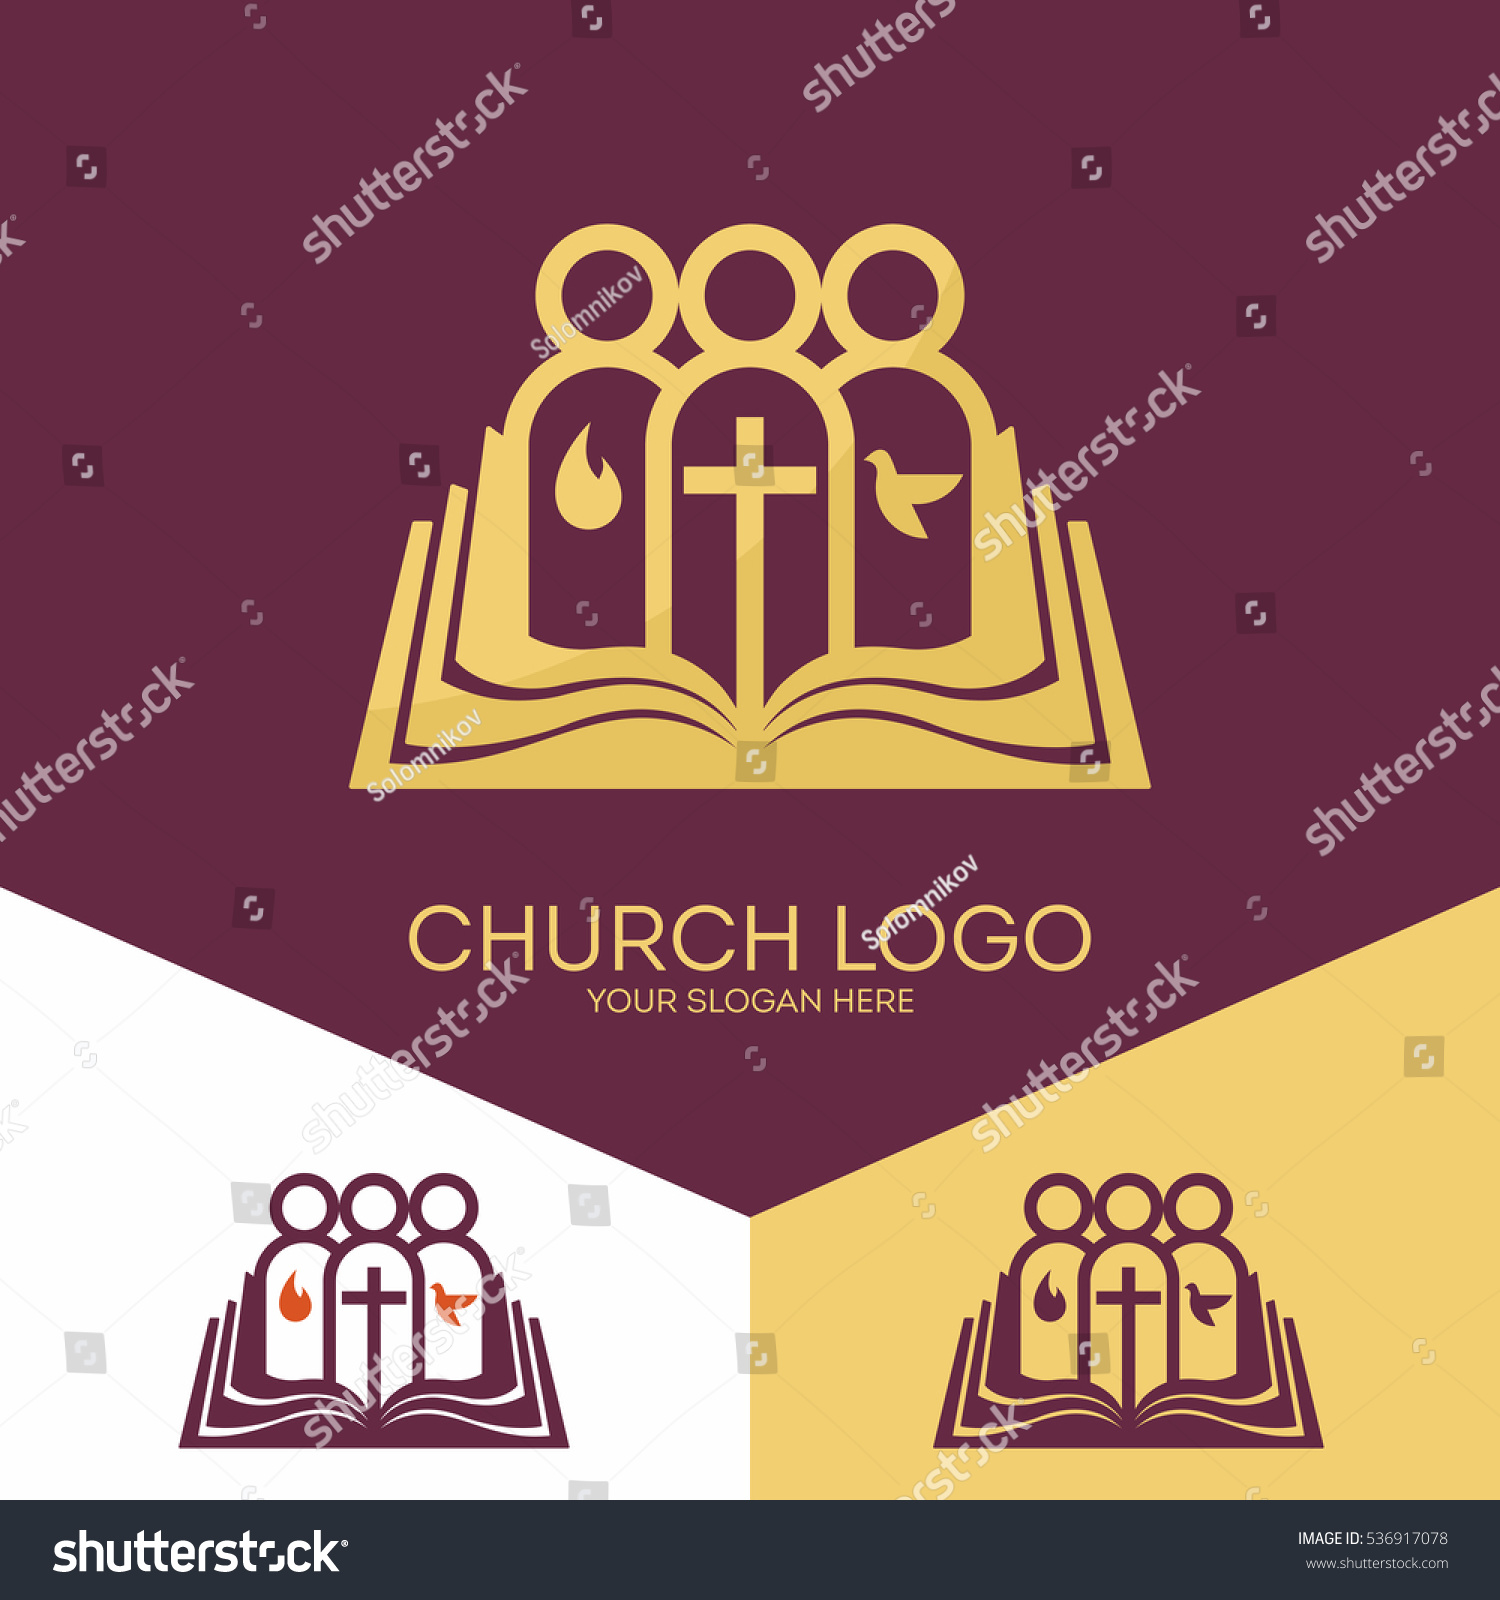 Church logo christian symbols church god stock vector 536917078 church logo christian symbols church of god faithful to the lord jesus christ buycottarizona Image collections